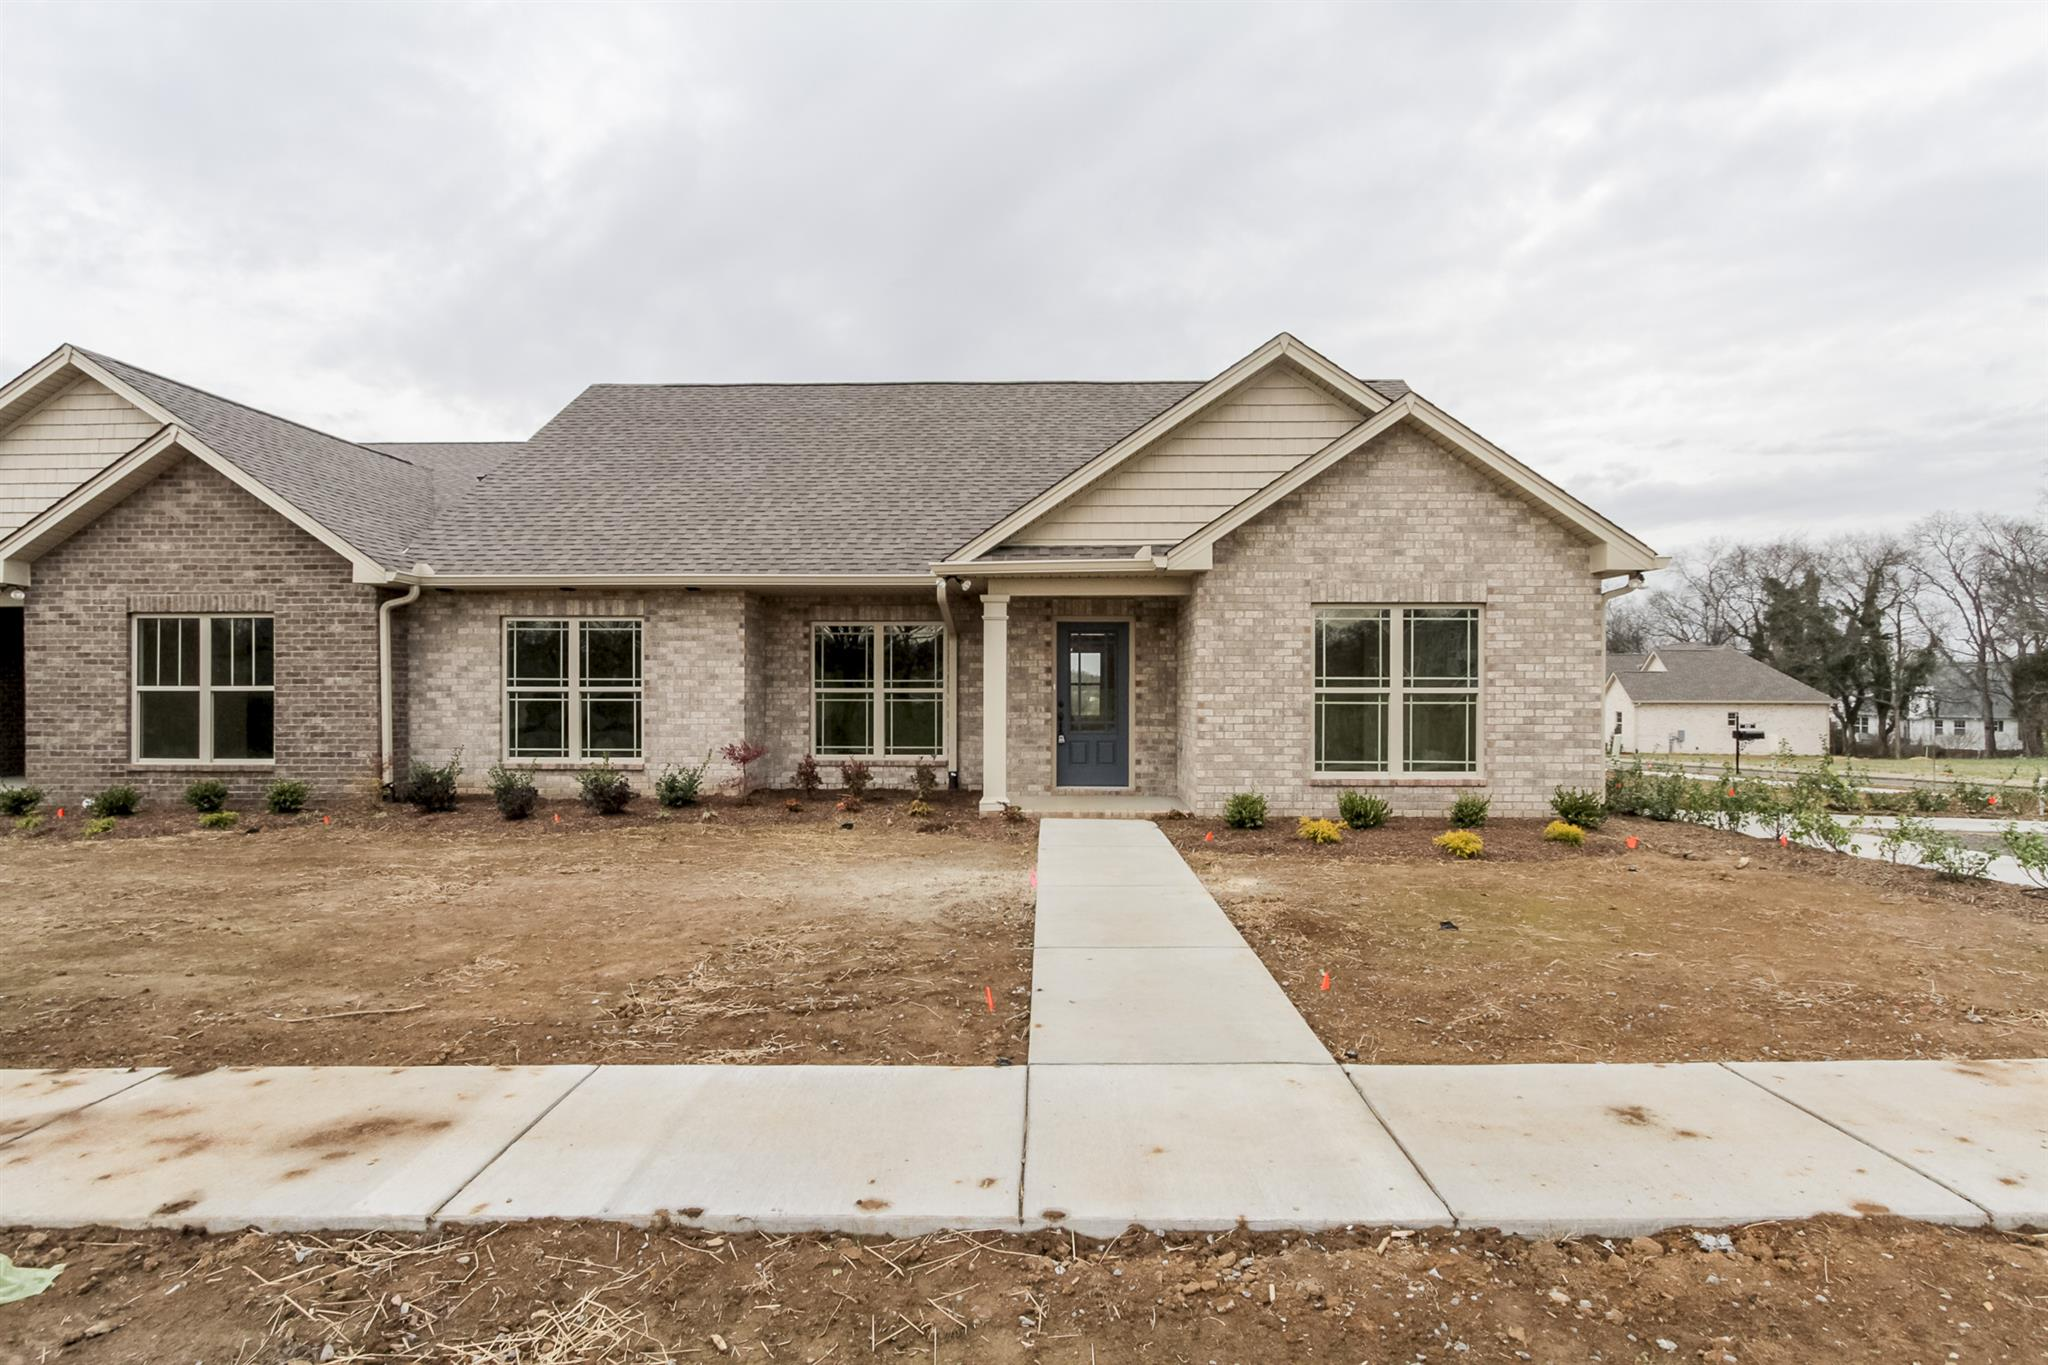 148A Odie Ray Street, Gallatin in Sumner County County, TN 37066 Home for Sale